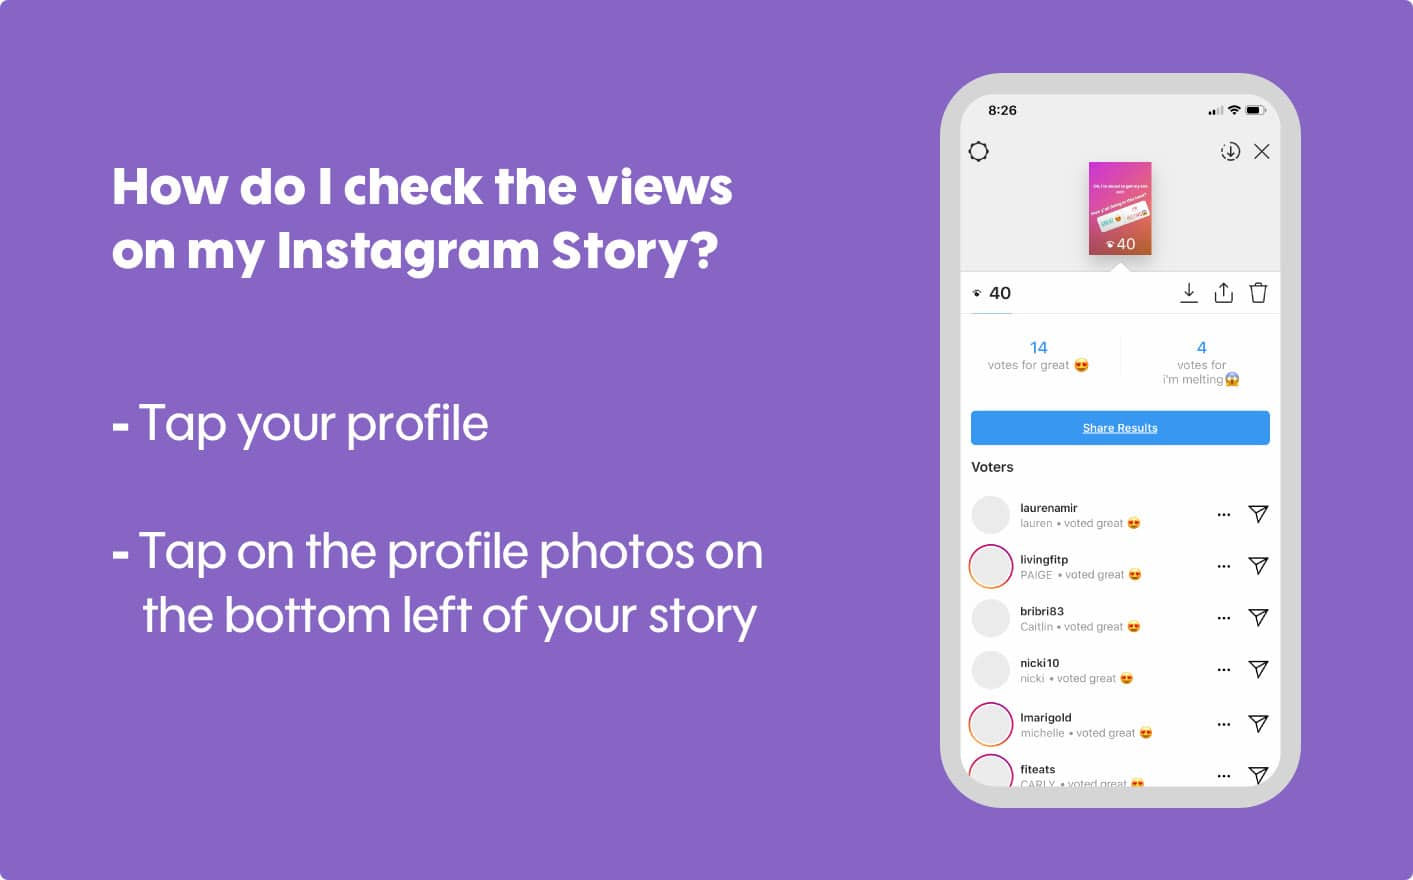 How to see who views your Instagram Stories?